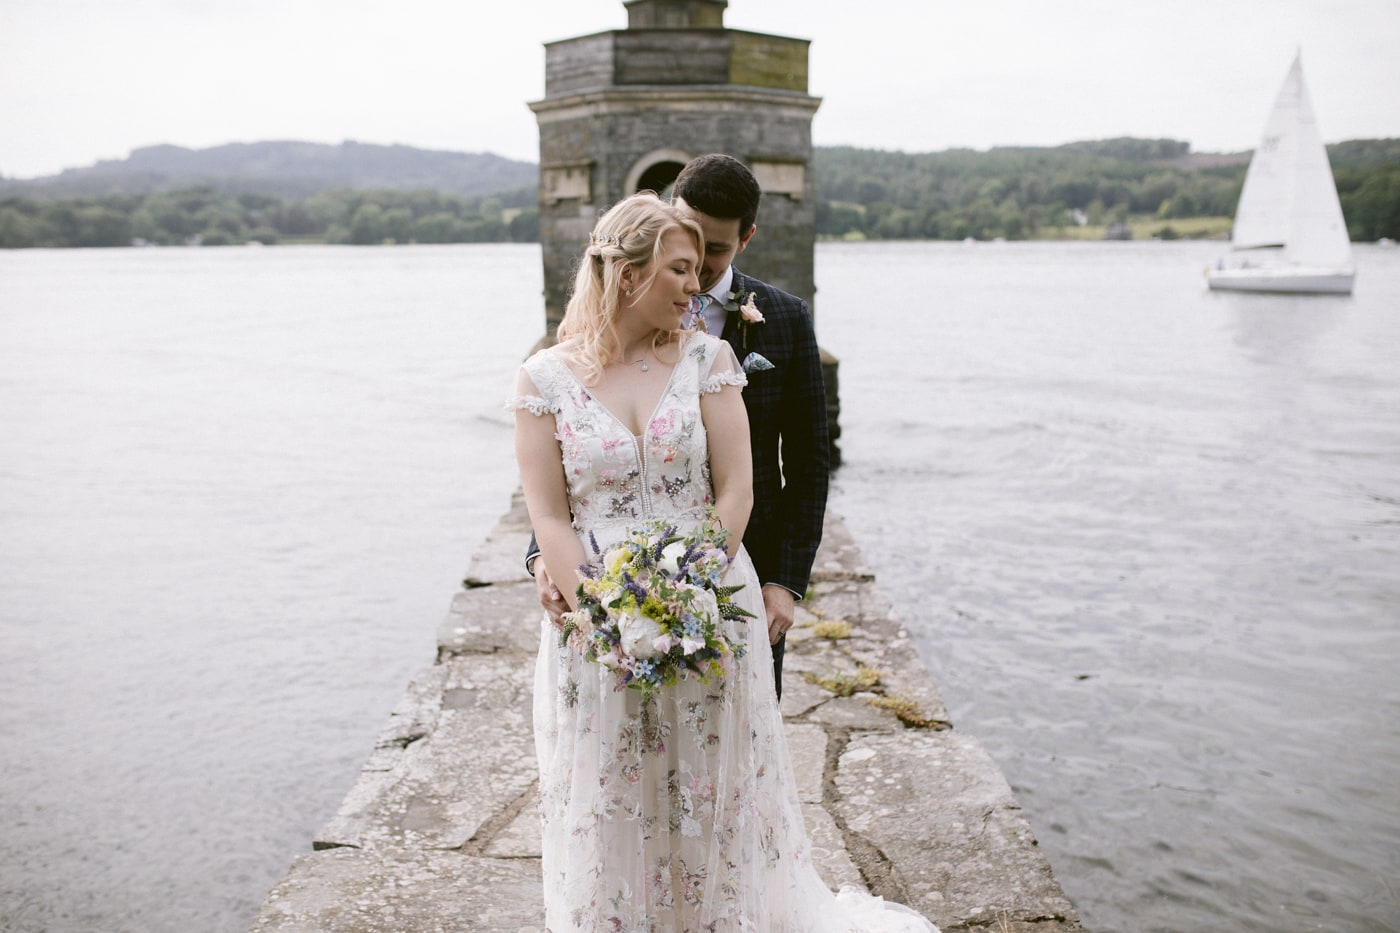 Bride and Groom Lakeside Together Portrait Shoot at Storrs Hall Wedding